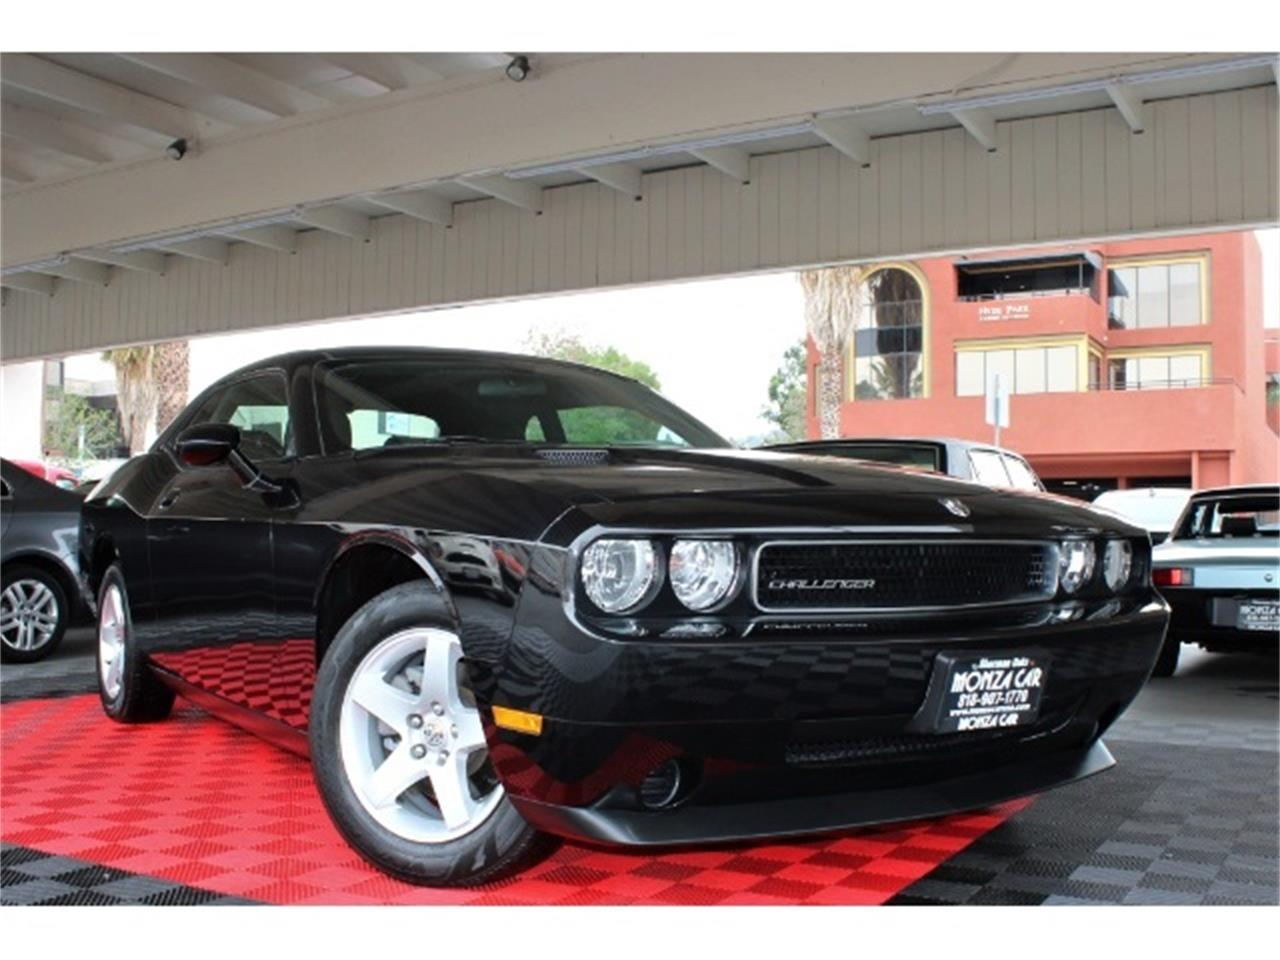 2010 dodge challenger for sale on classiccars com rh classiccars com 2010 dodge challenger repair manual 2010 dodge challenger service manual pdf